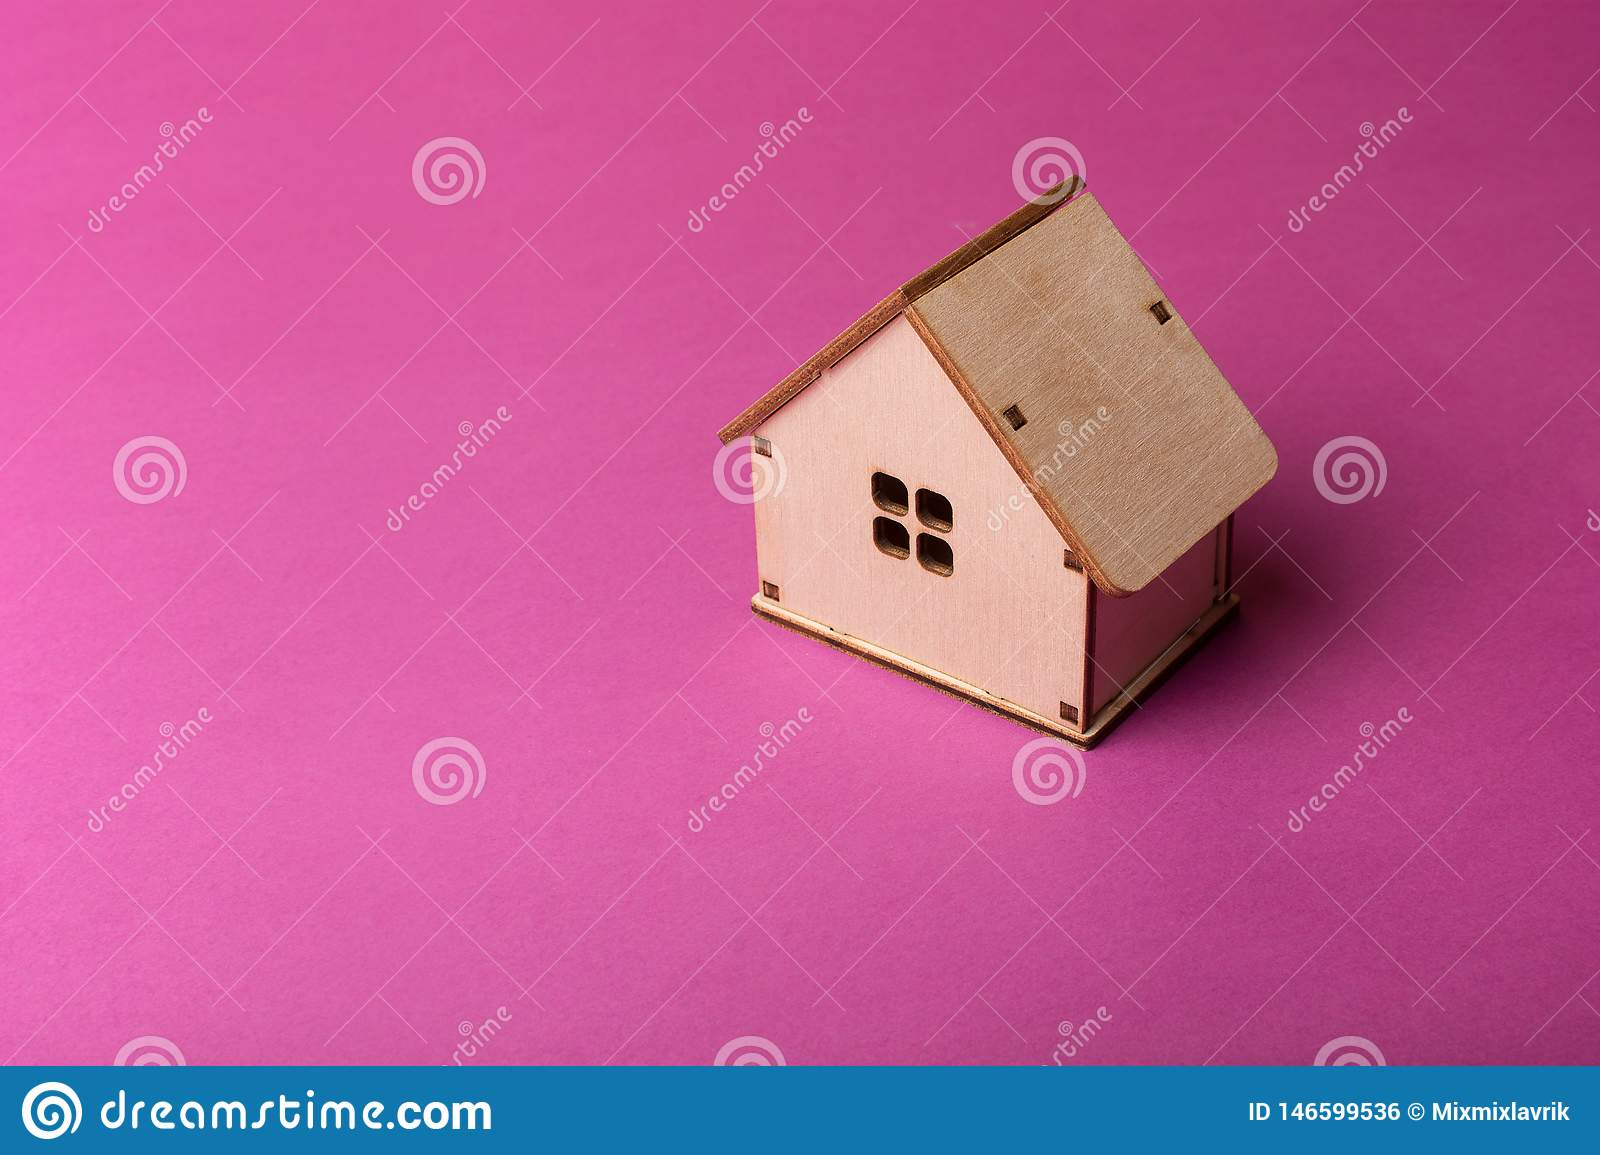 Minimal design with miniature wood toy house.